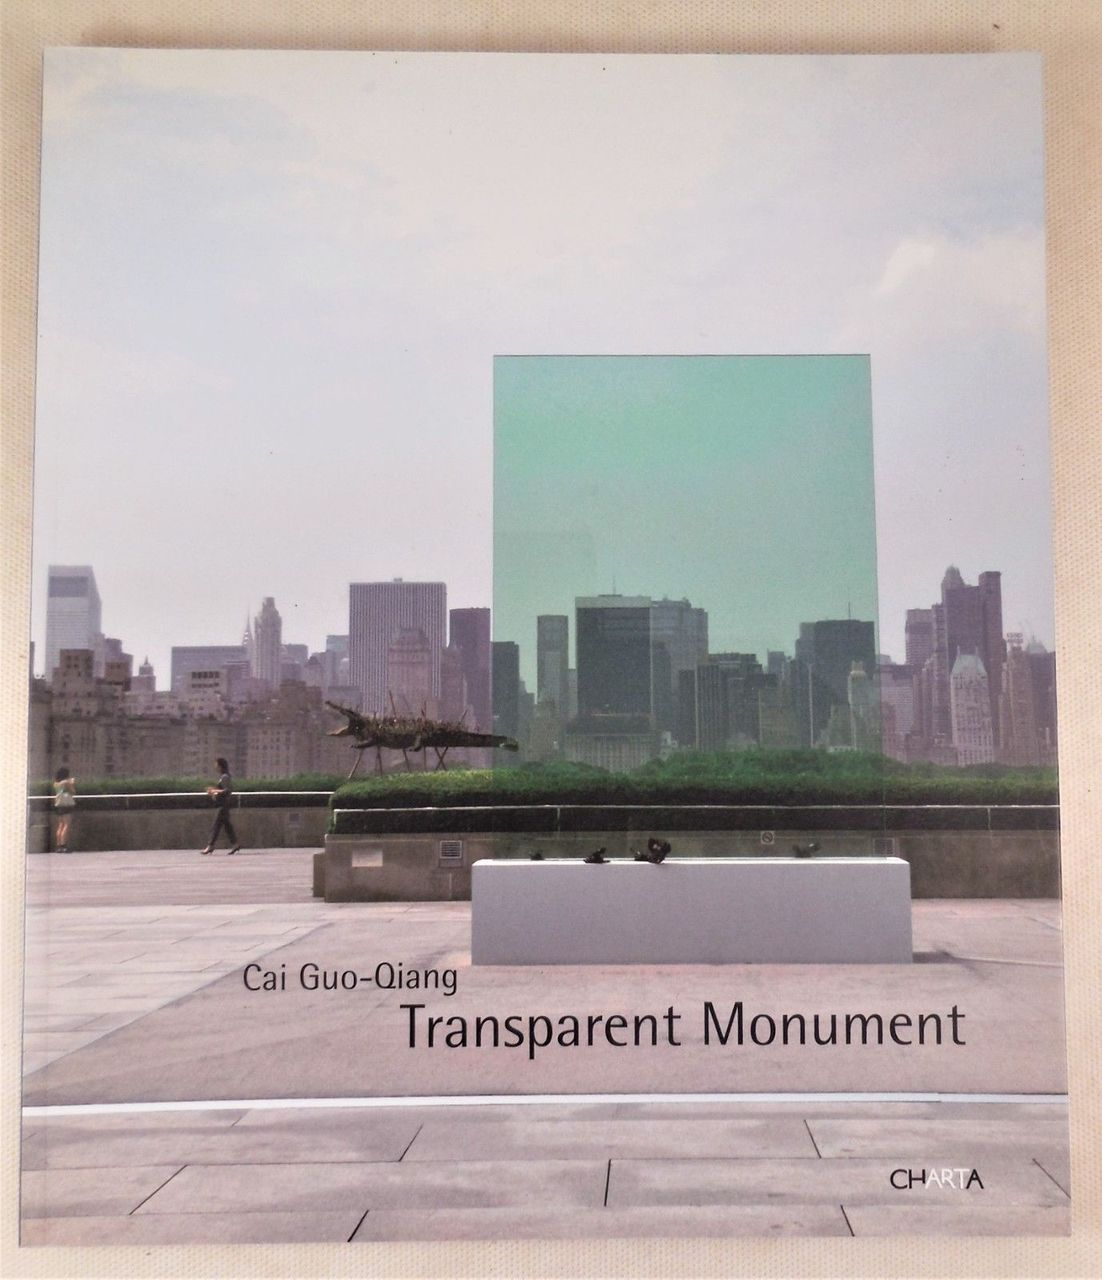 TRANSPARENT MONUMENT, by Cai Guo-Qiang - 2006 [Signed]